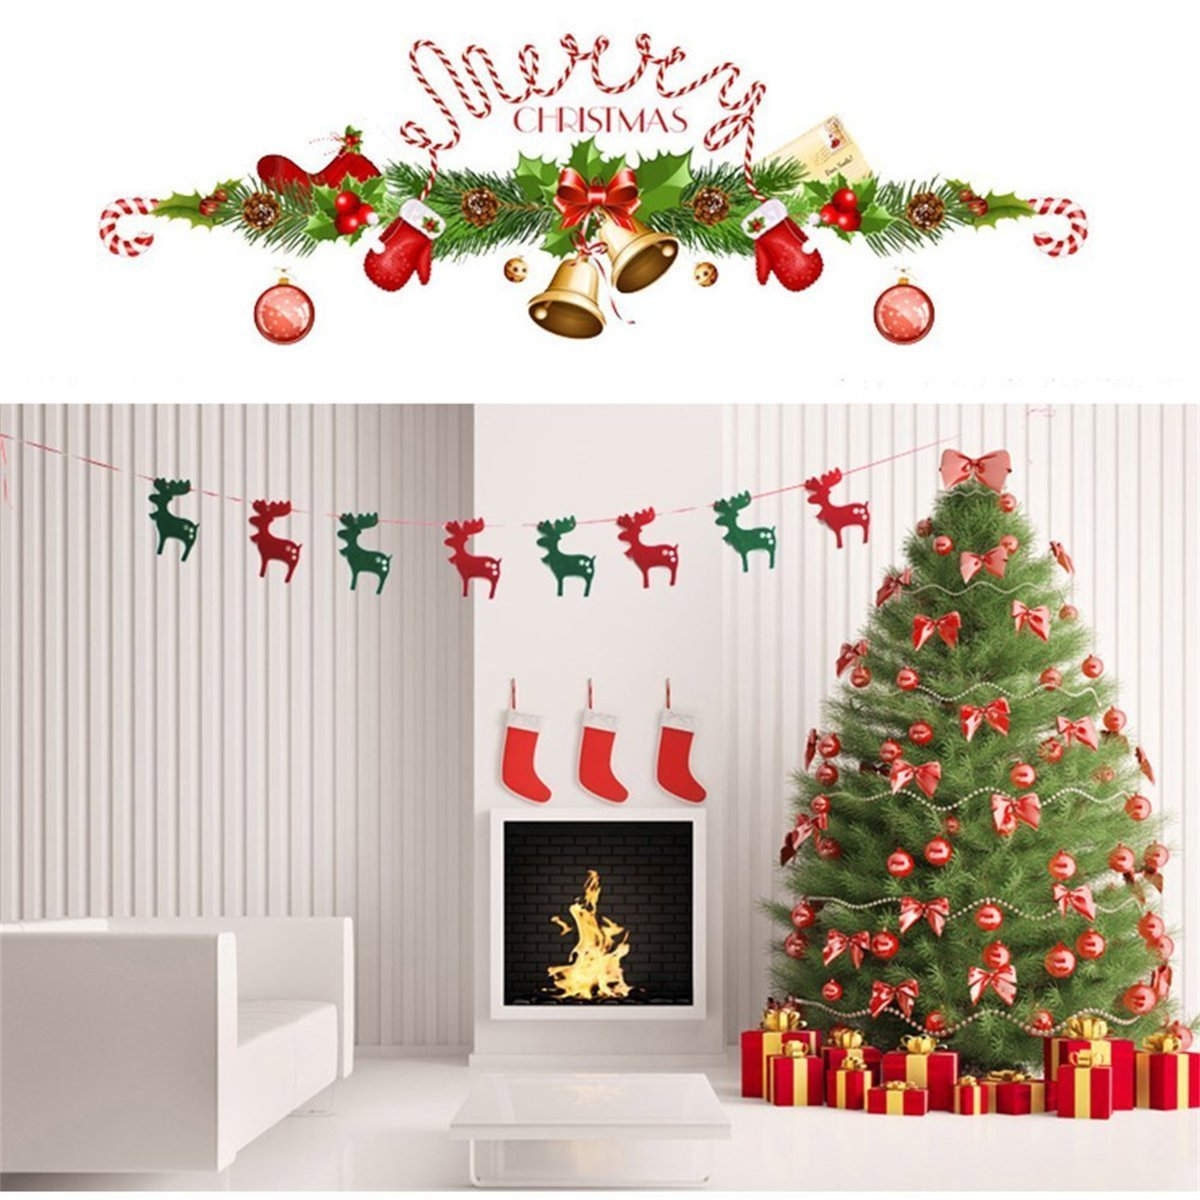 Tanxih Christmas Hanging Buntings Banner Garland String Party Flag Christmas Home Decorations to Pull Shops Decorate a Christmas Tree Flags Flying (reindeer)